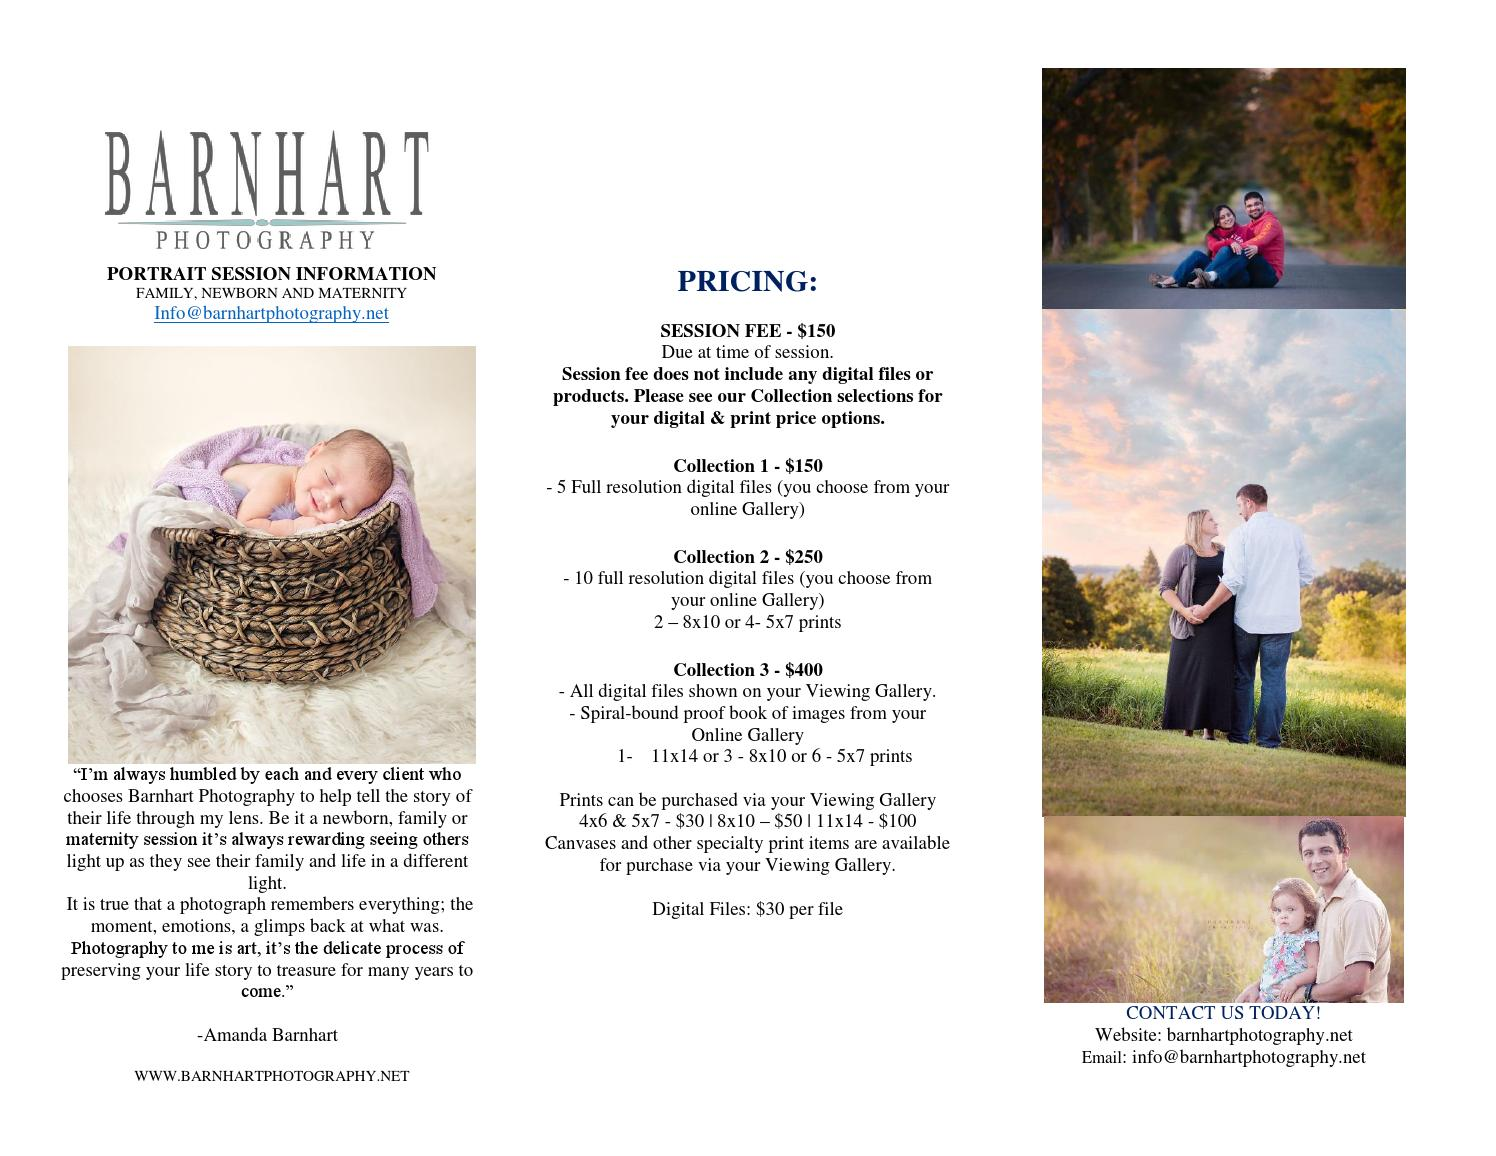 Barnhart Photography - Portrait Session information 2016 by